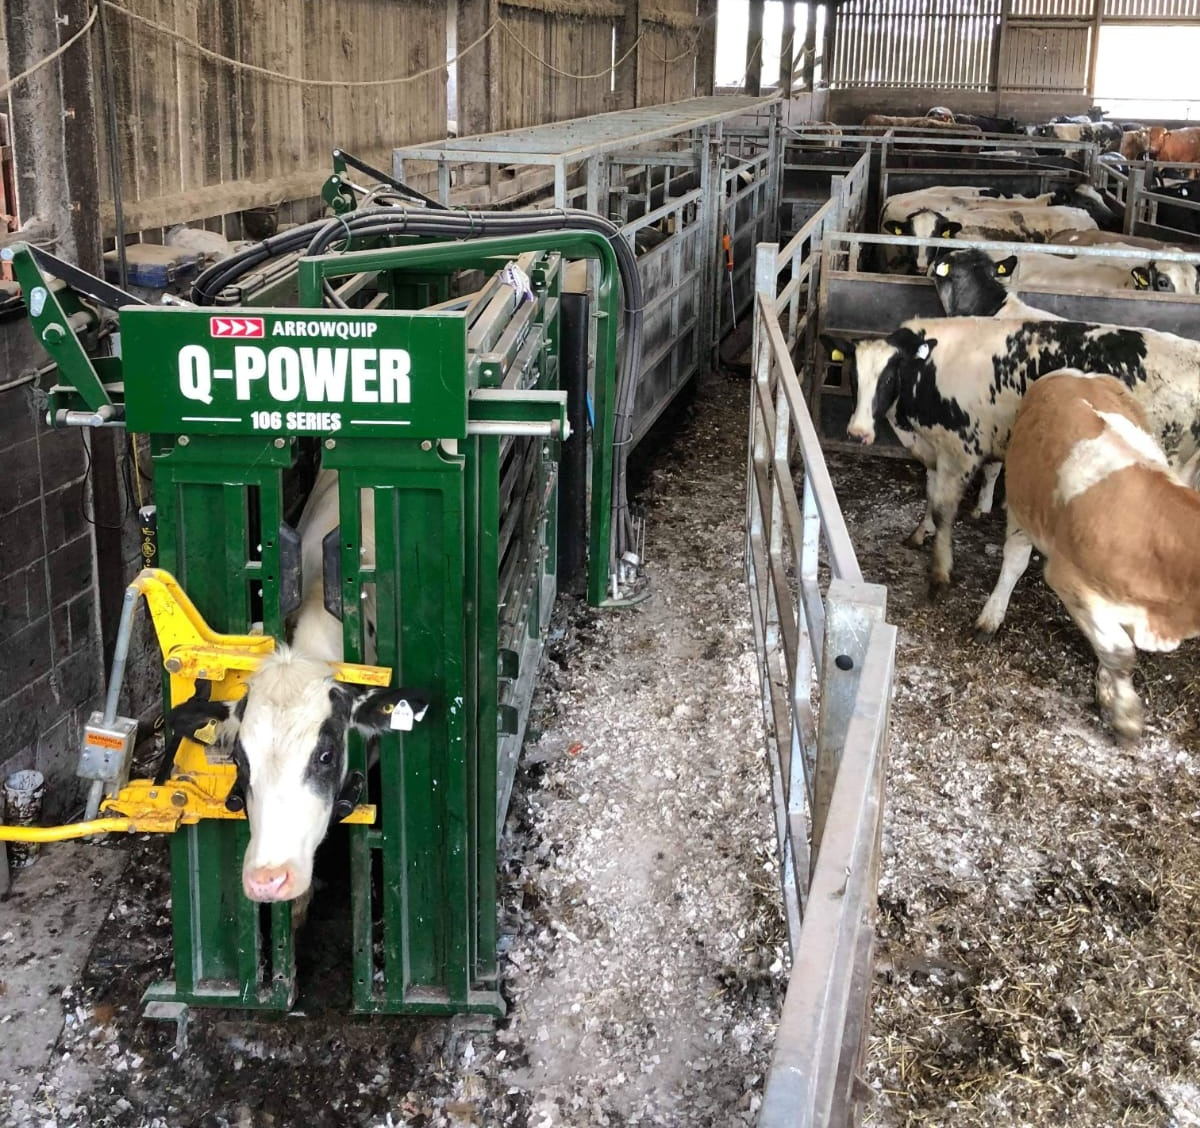 The Q-Power 106 Series Hydraulic Cattle Crush reduces stress to cattle handlers and their livestock.